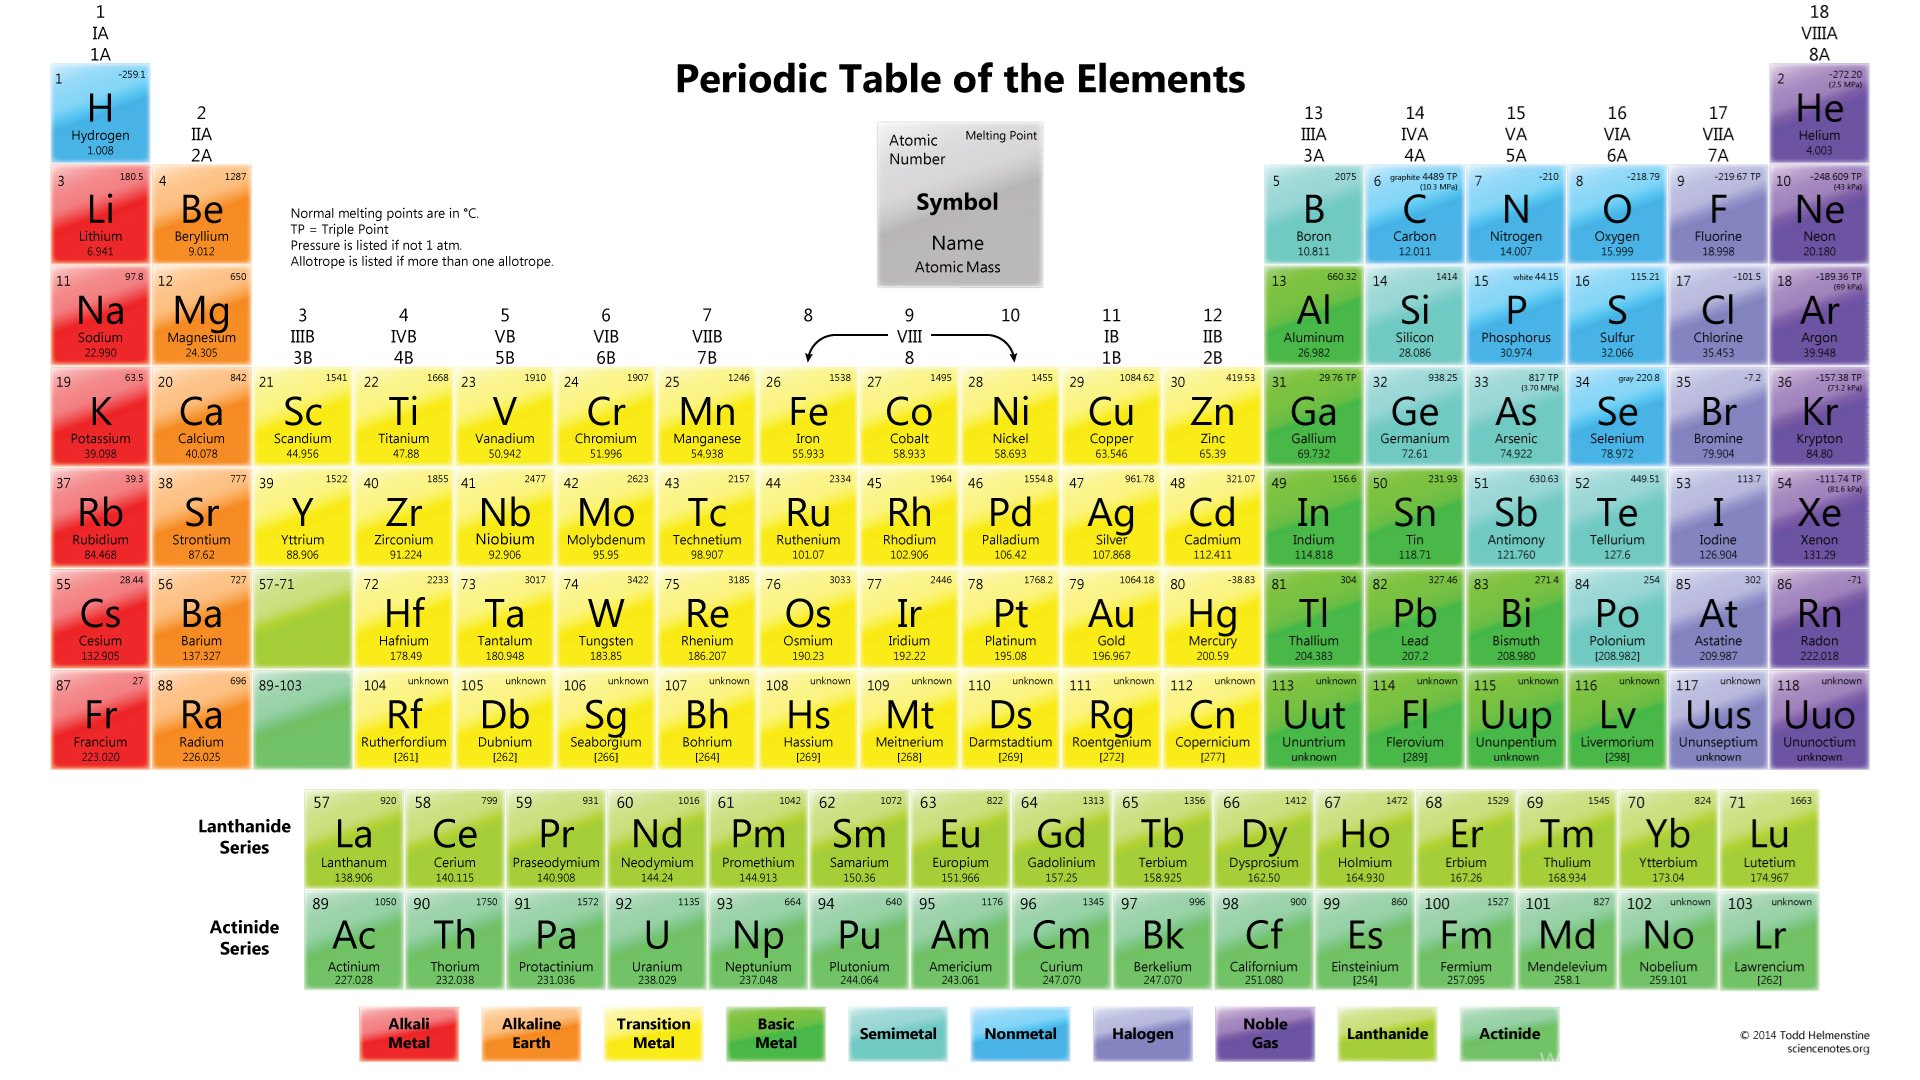 Periodic table by melting point images periodic table images periodic table wallpapers element melting points desktop background popular gamestrikefo images gamestrikefo Image collections